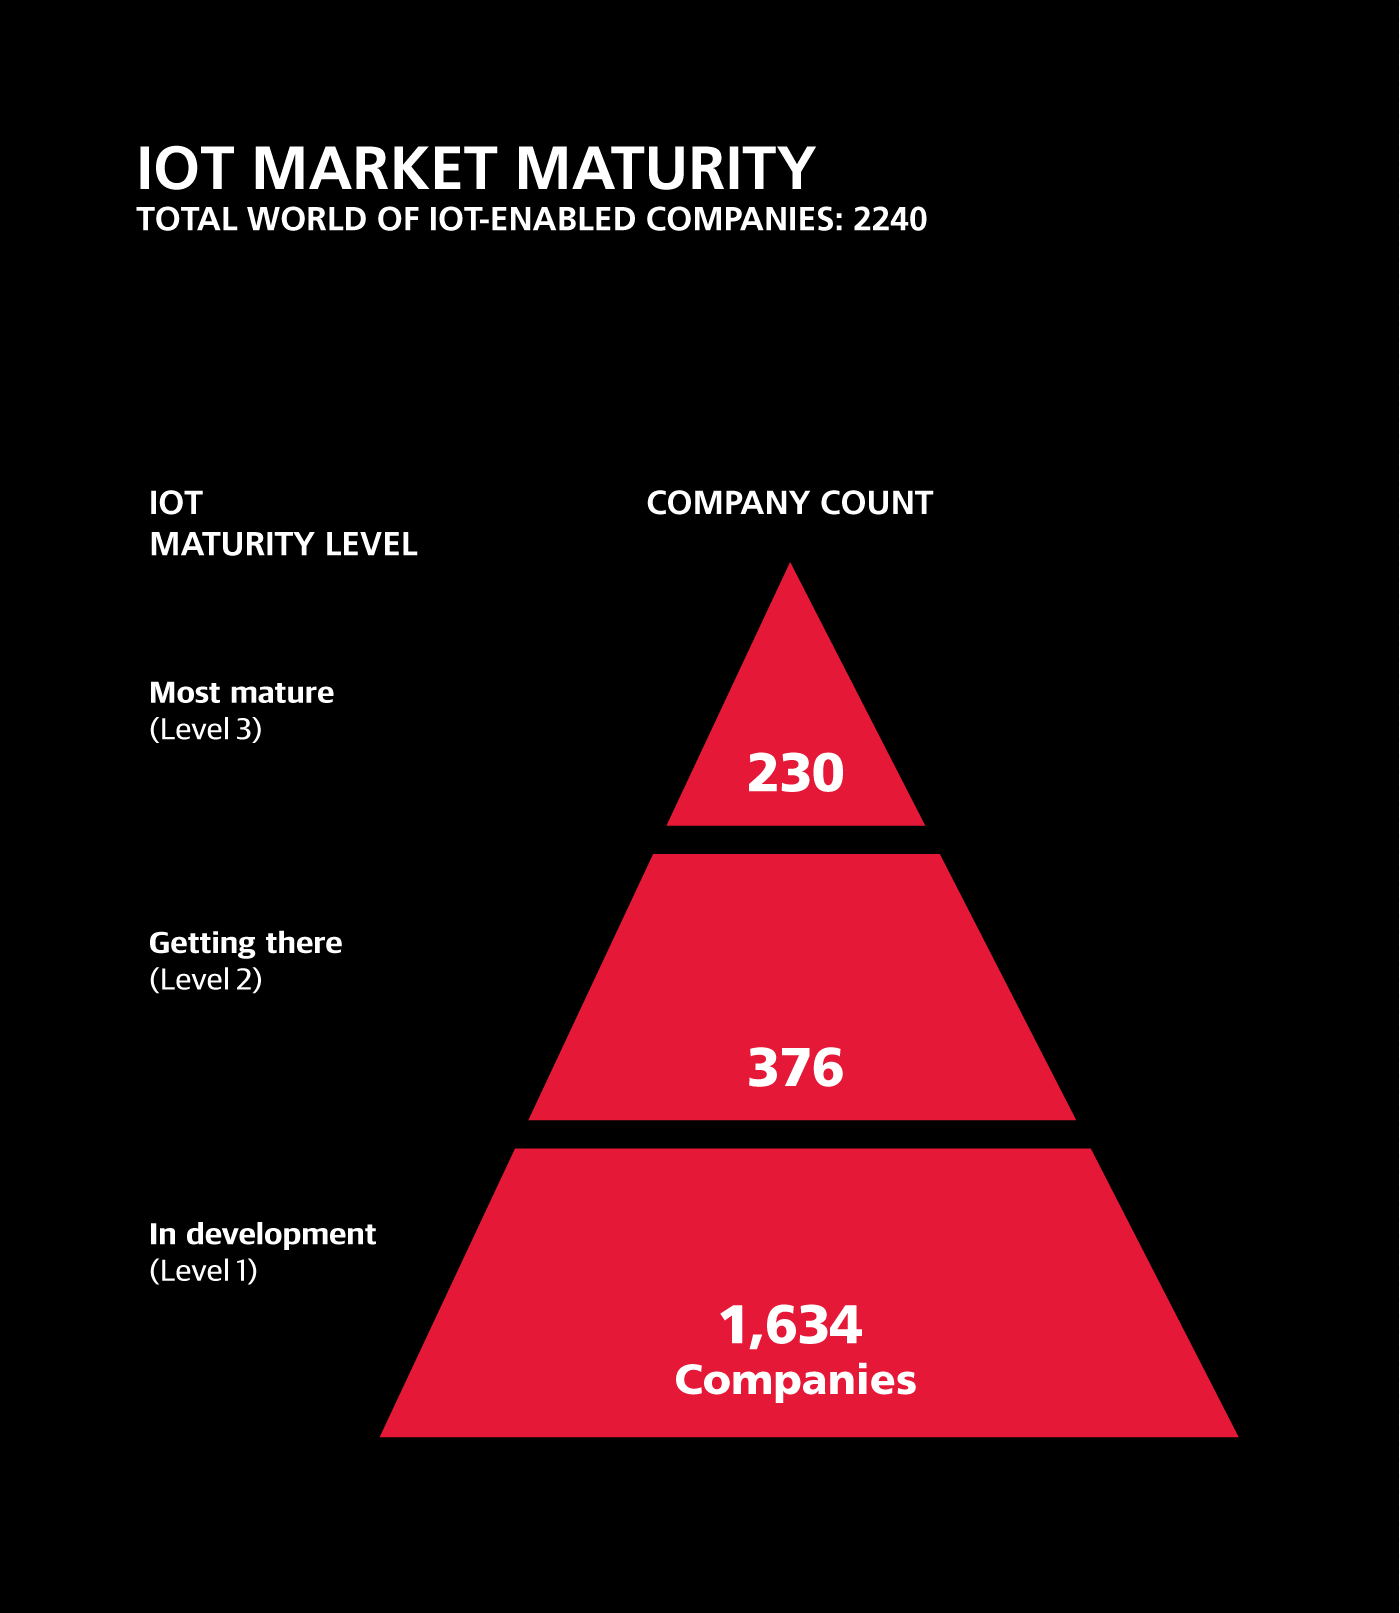 adopted IoT technologies by level of maturity